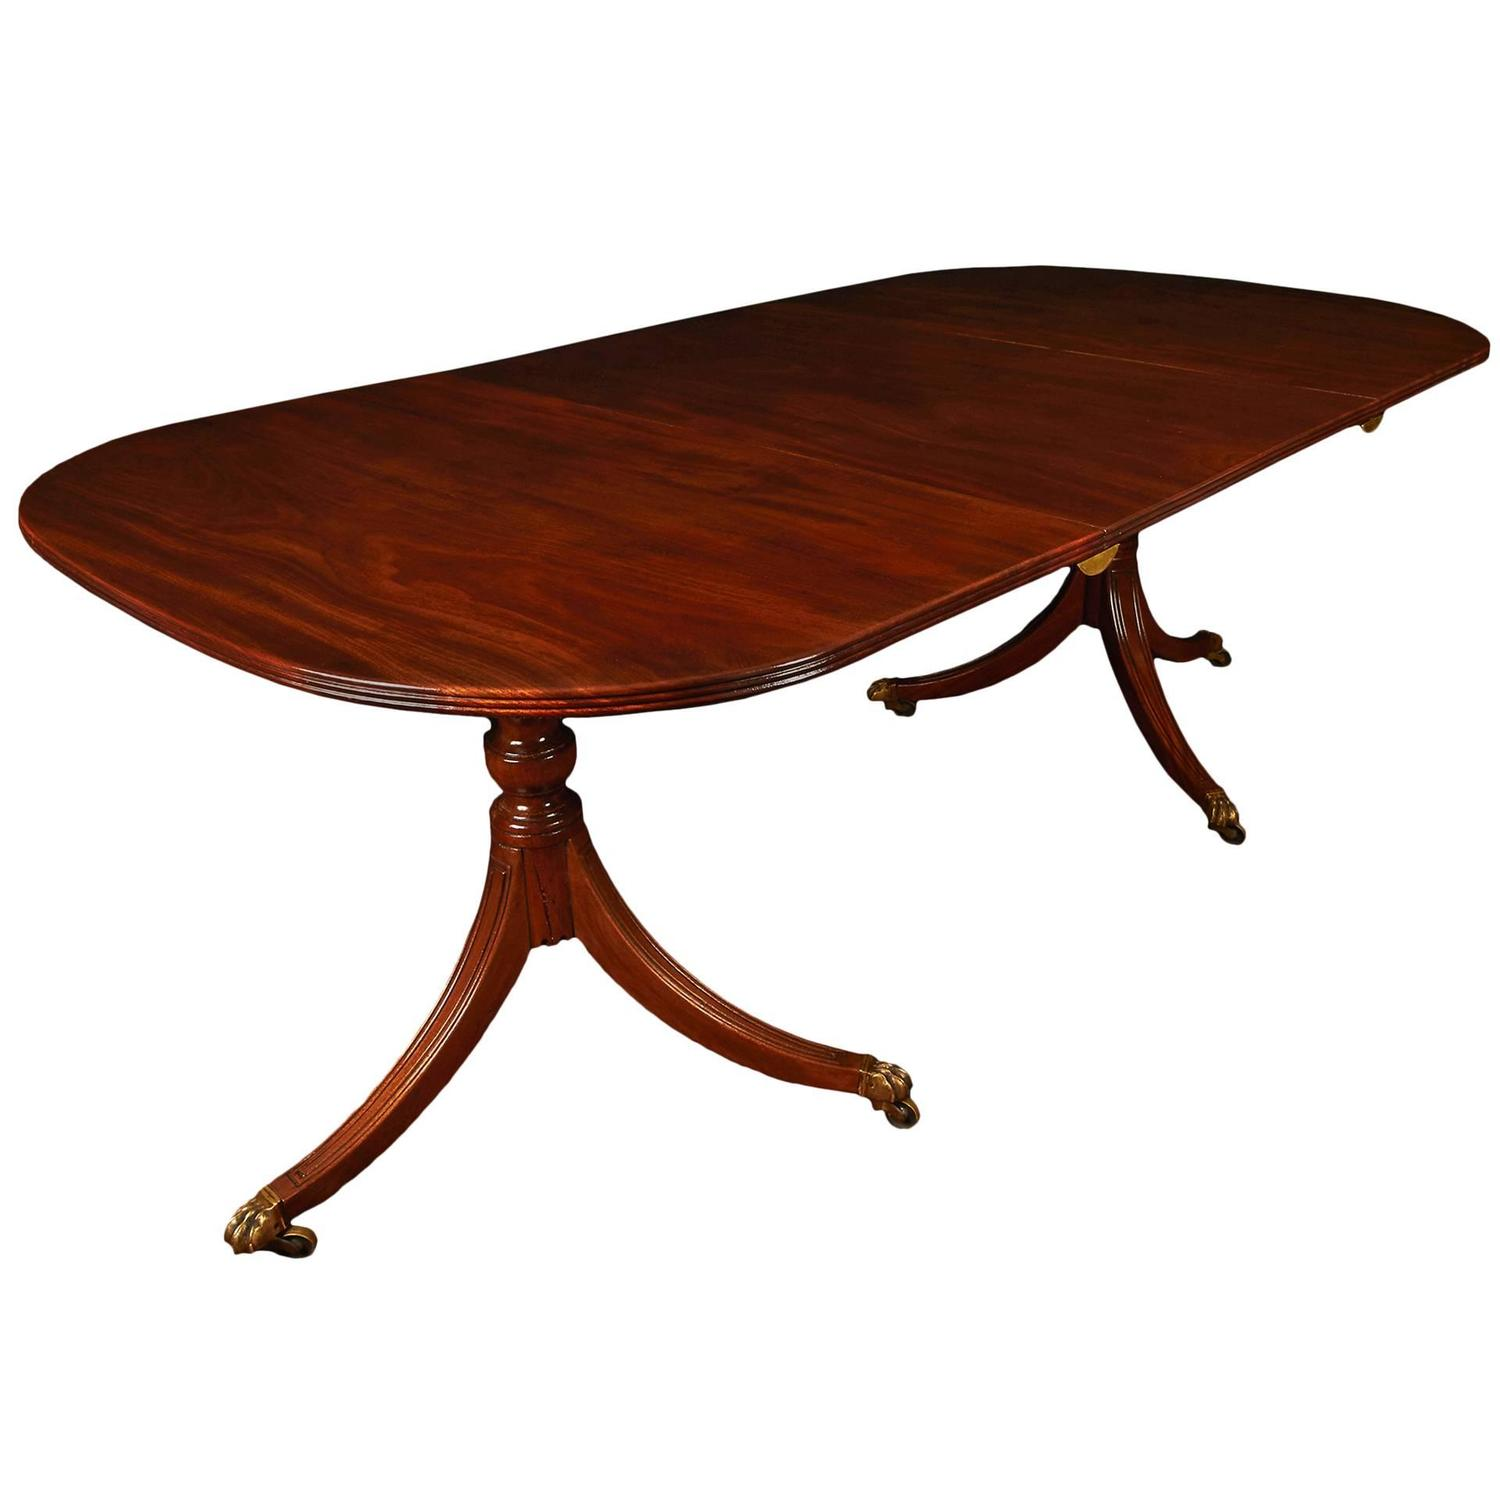 Small georgian mahogany two pedestal dining table at 1stdibs for Low dining table